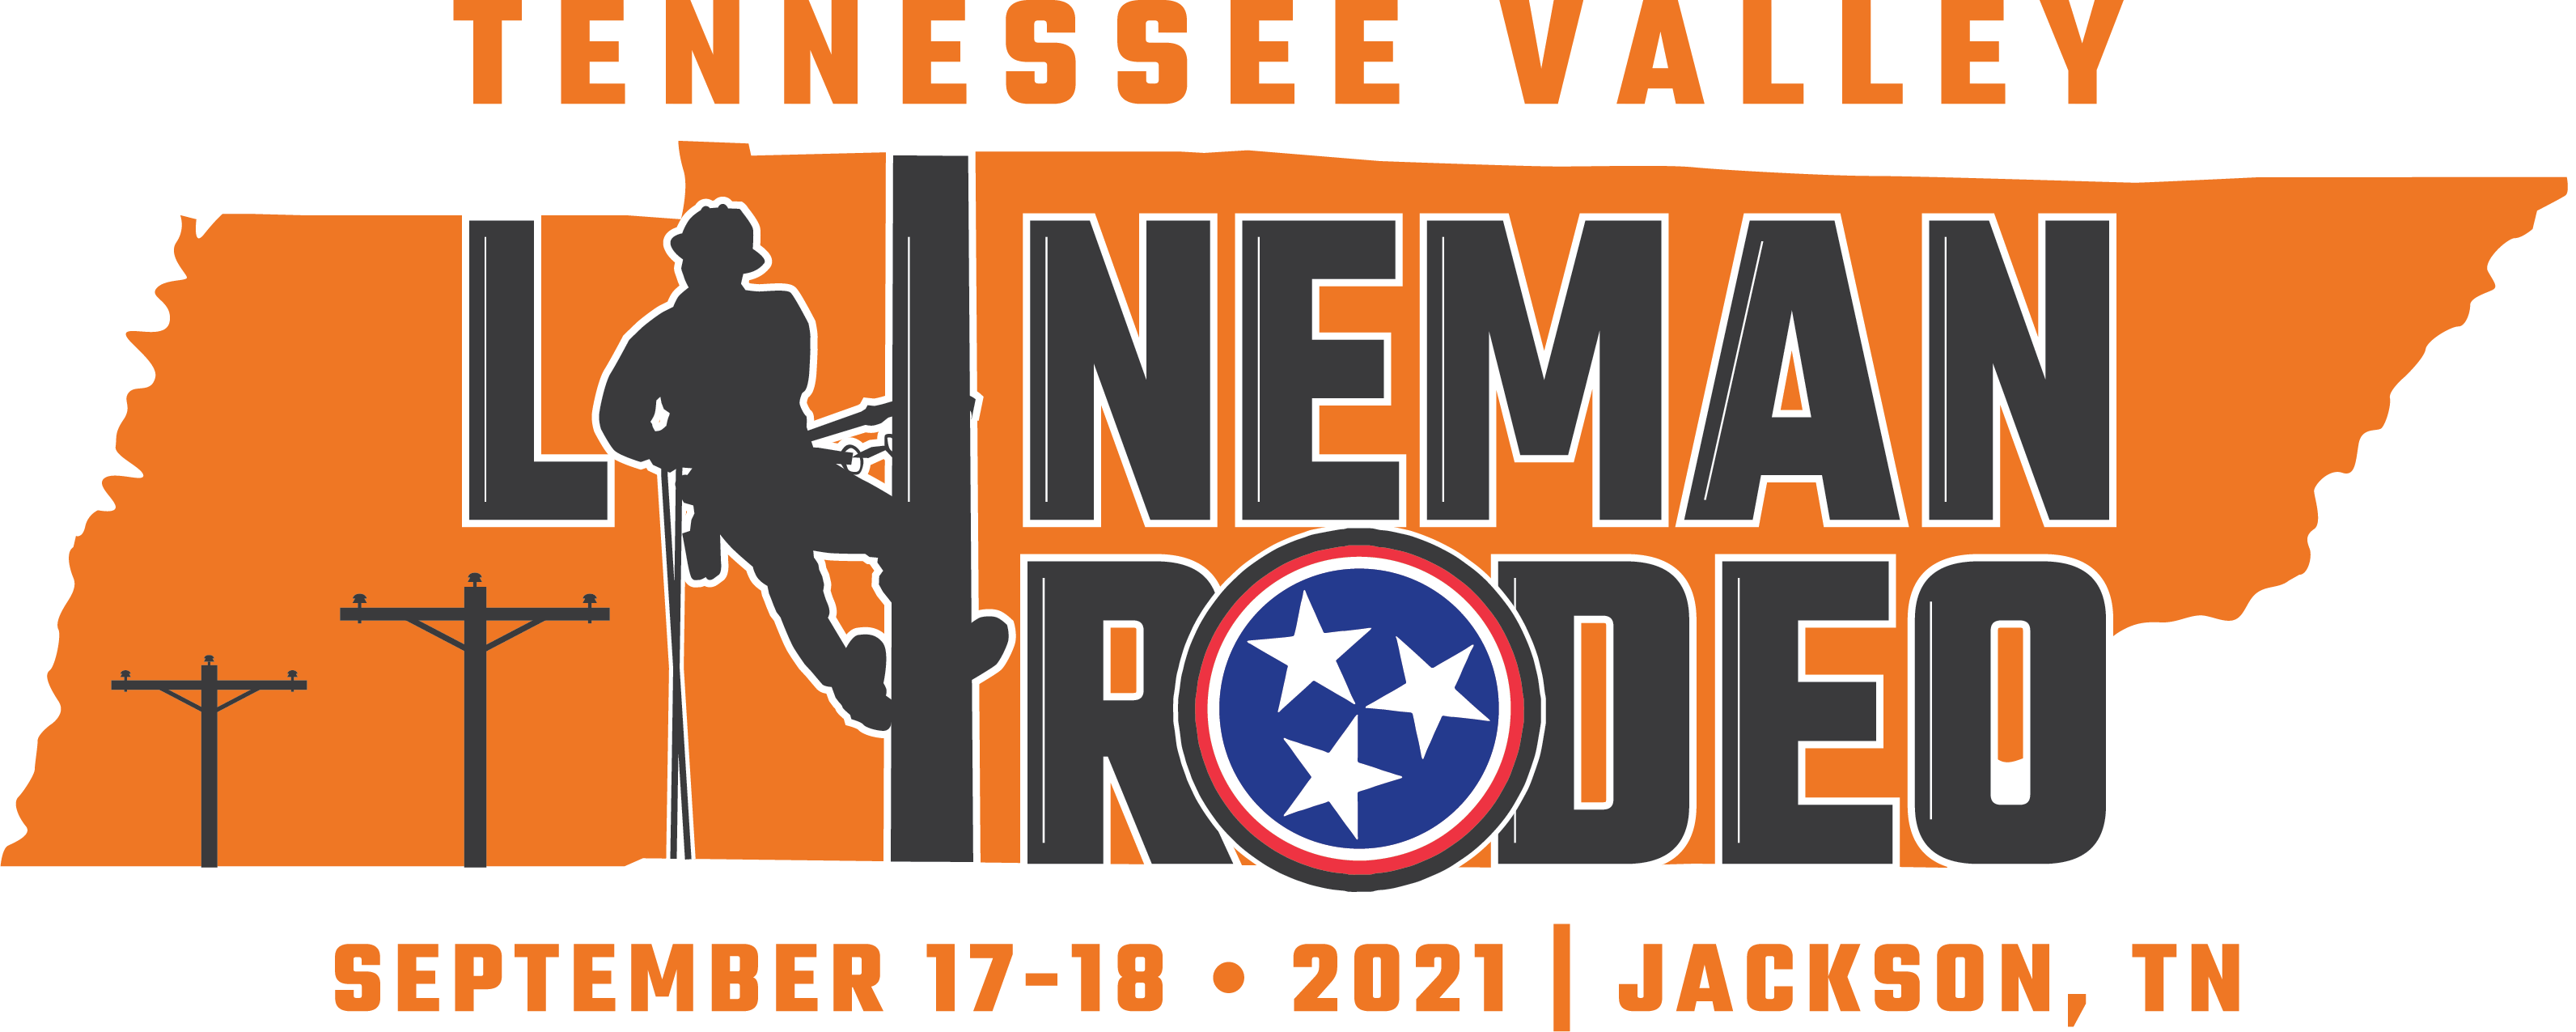 Tennessee Valley Lineman Rodeo 2021 Logo